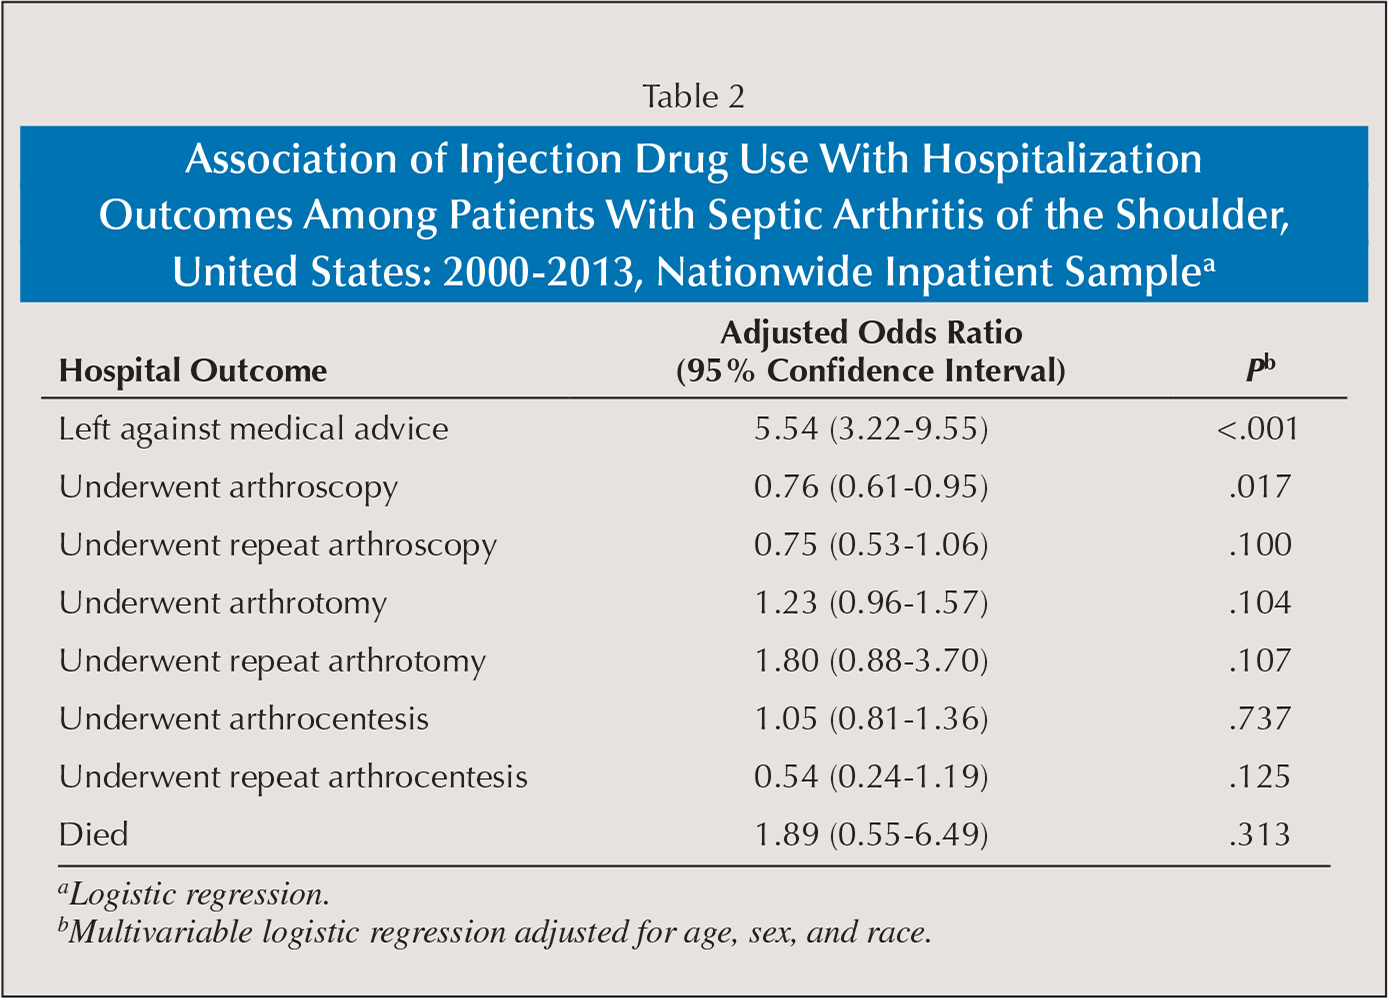 Association of Injection Drug Use With Hospitalization Outcomes Among Patients With Septic Arthritis of the Shoulder, United States: 2000–2013, Nationwide Inpatient Samplea